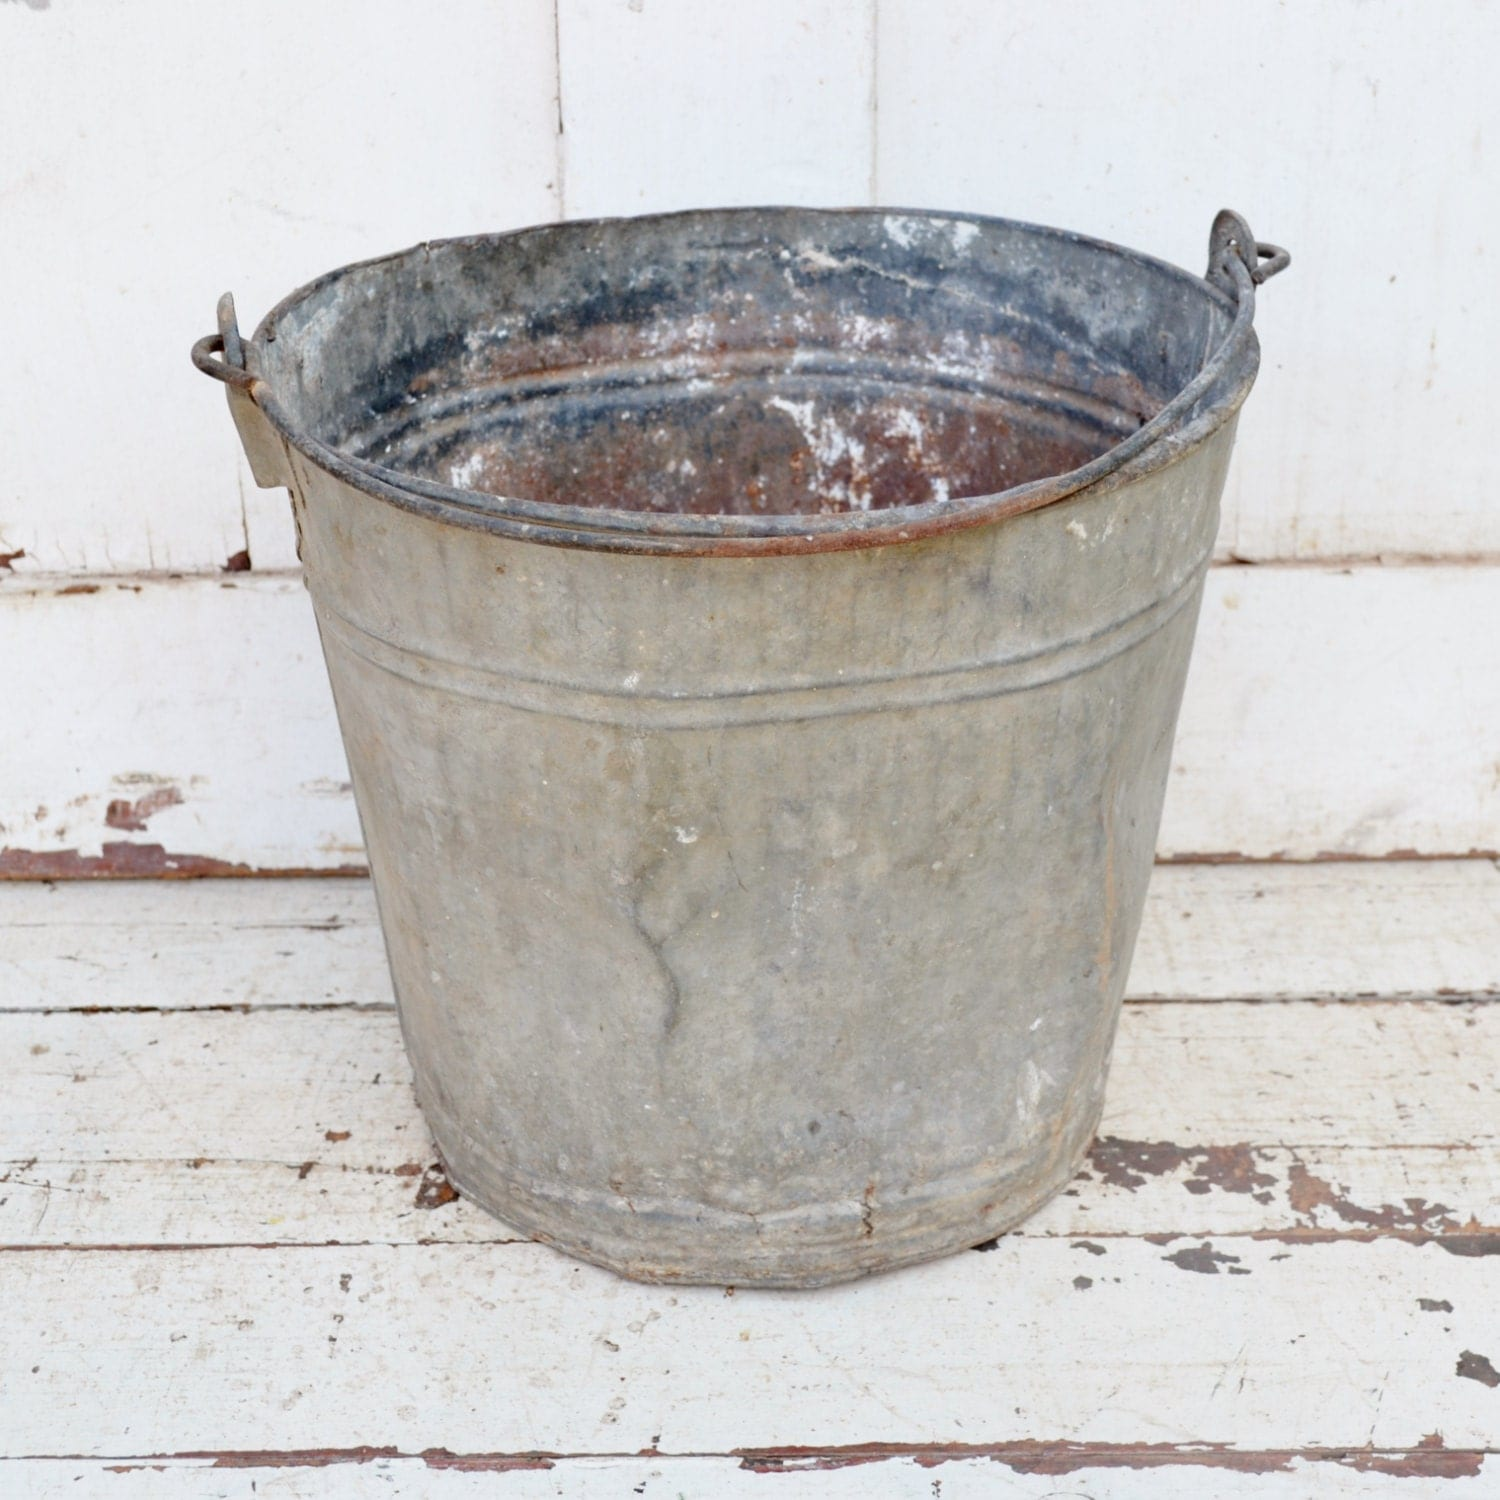 Vintage galvanized metal bucket leaky holes dents pail rustic for Rustic galvanized buckets